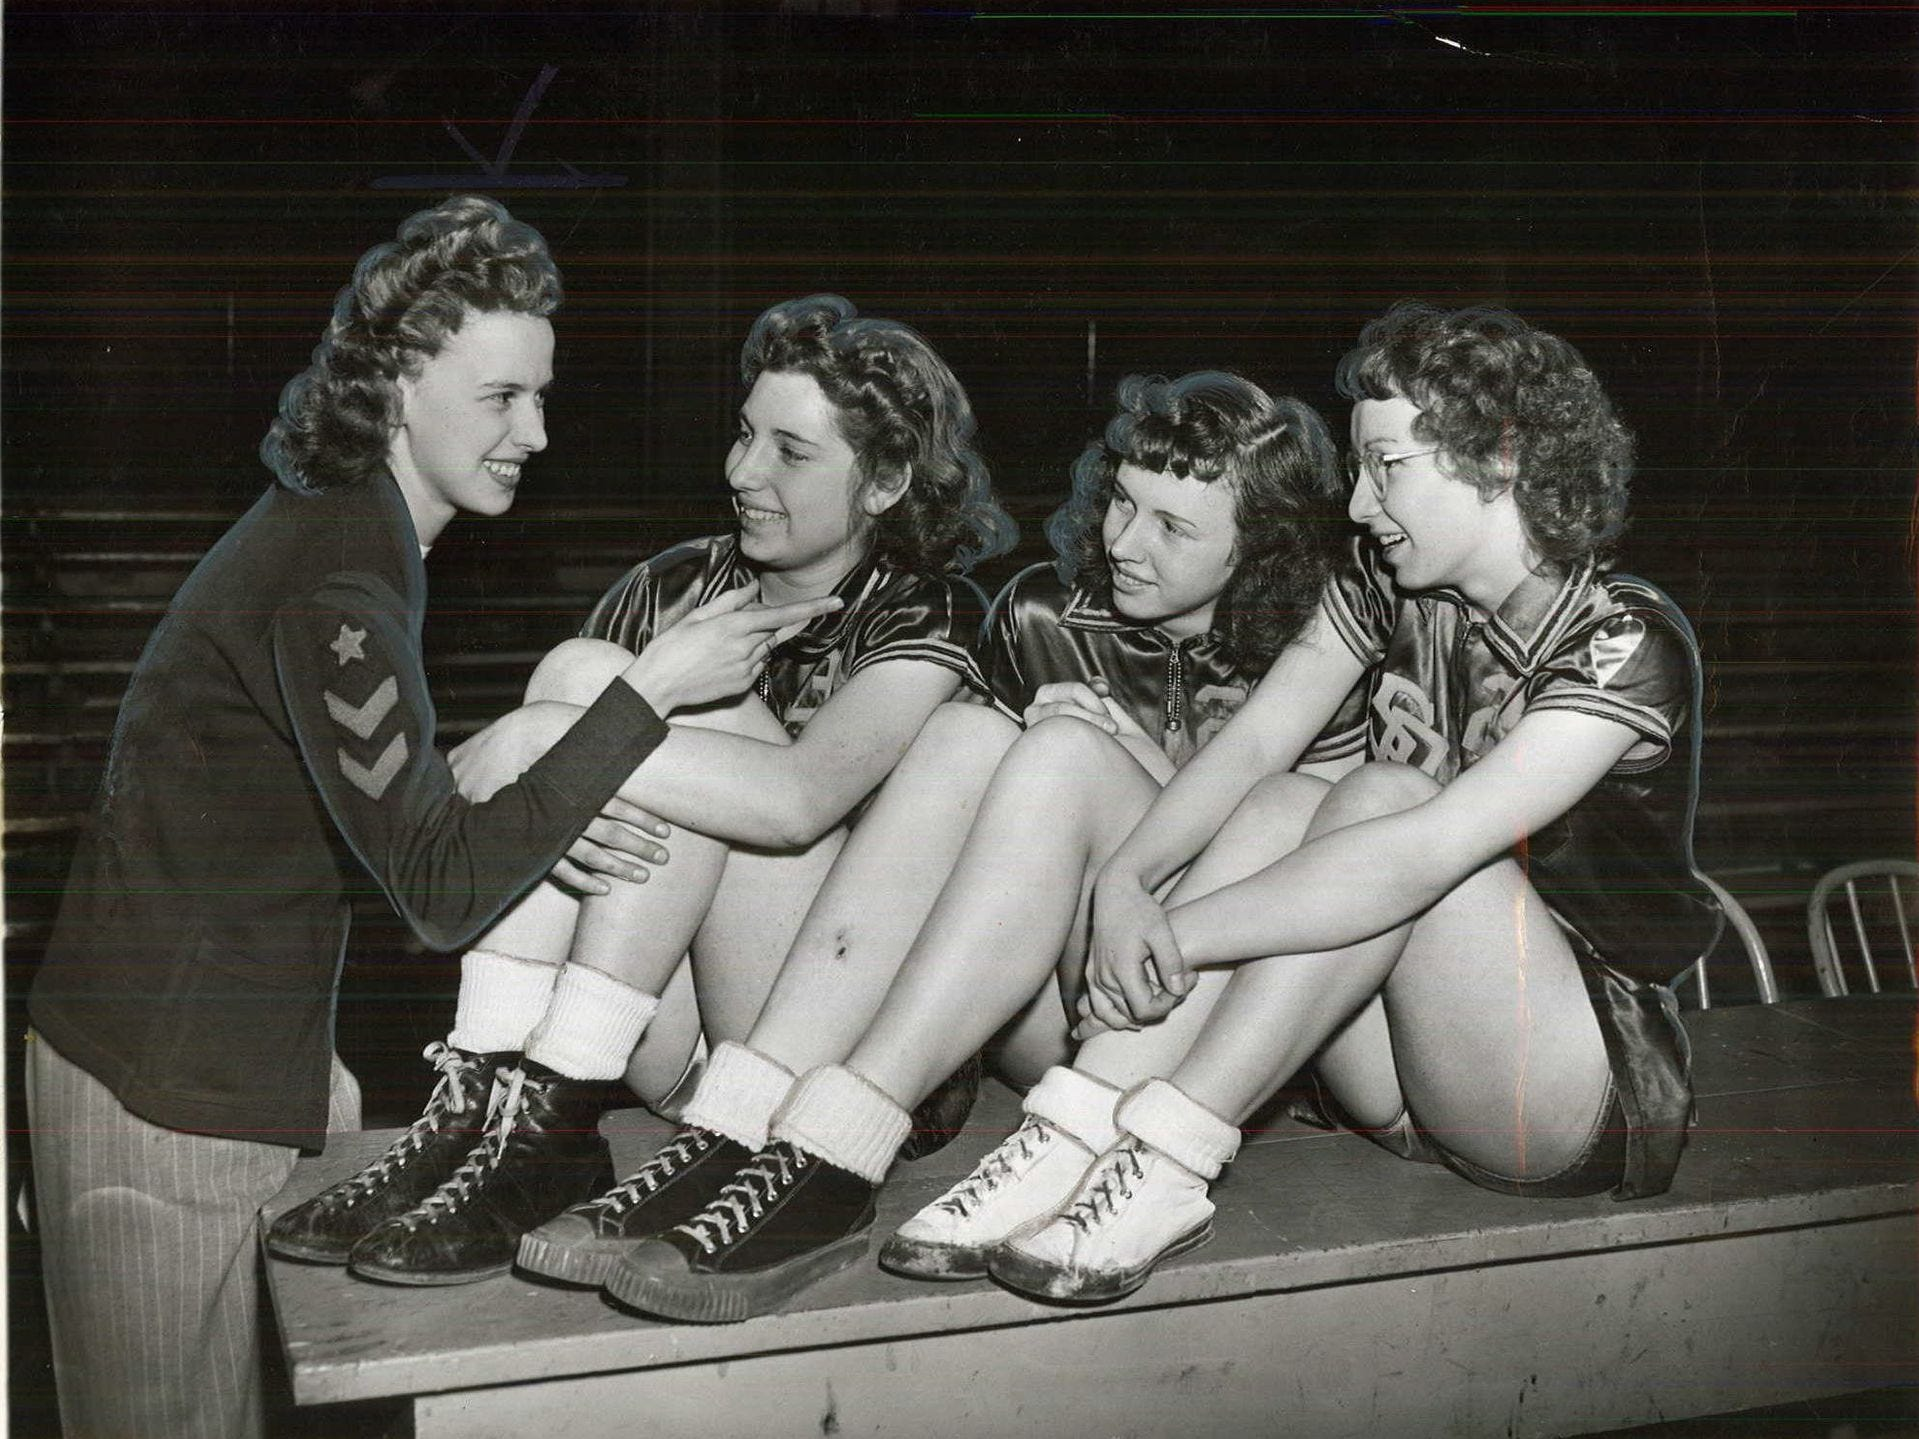 1946: Ivy Mae Gast, who played for Steamboat Rock in 1944, talks to members of the 1946 team during the state girlsÕ basketball tournament. Register file photo